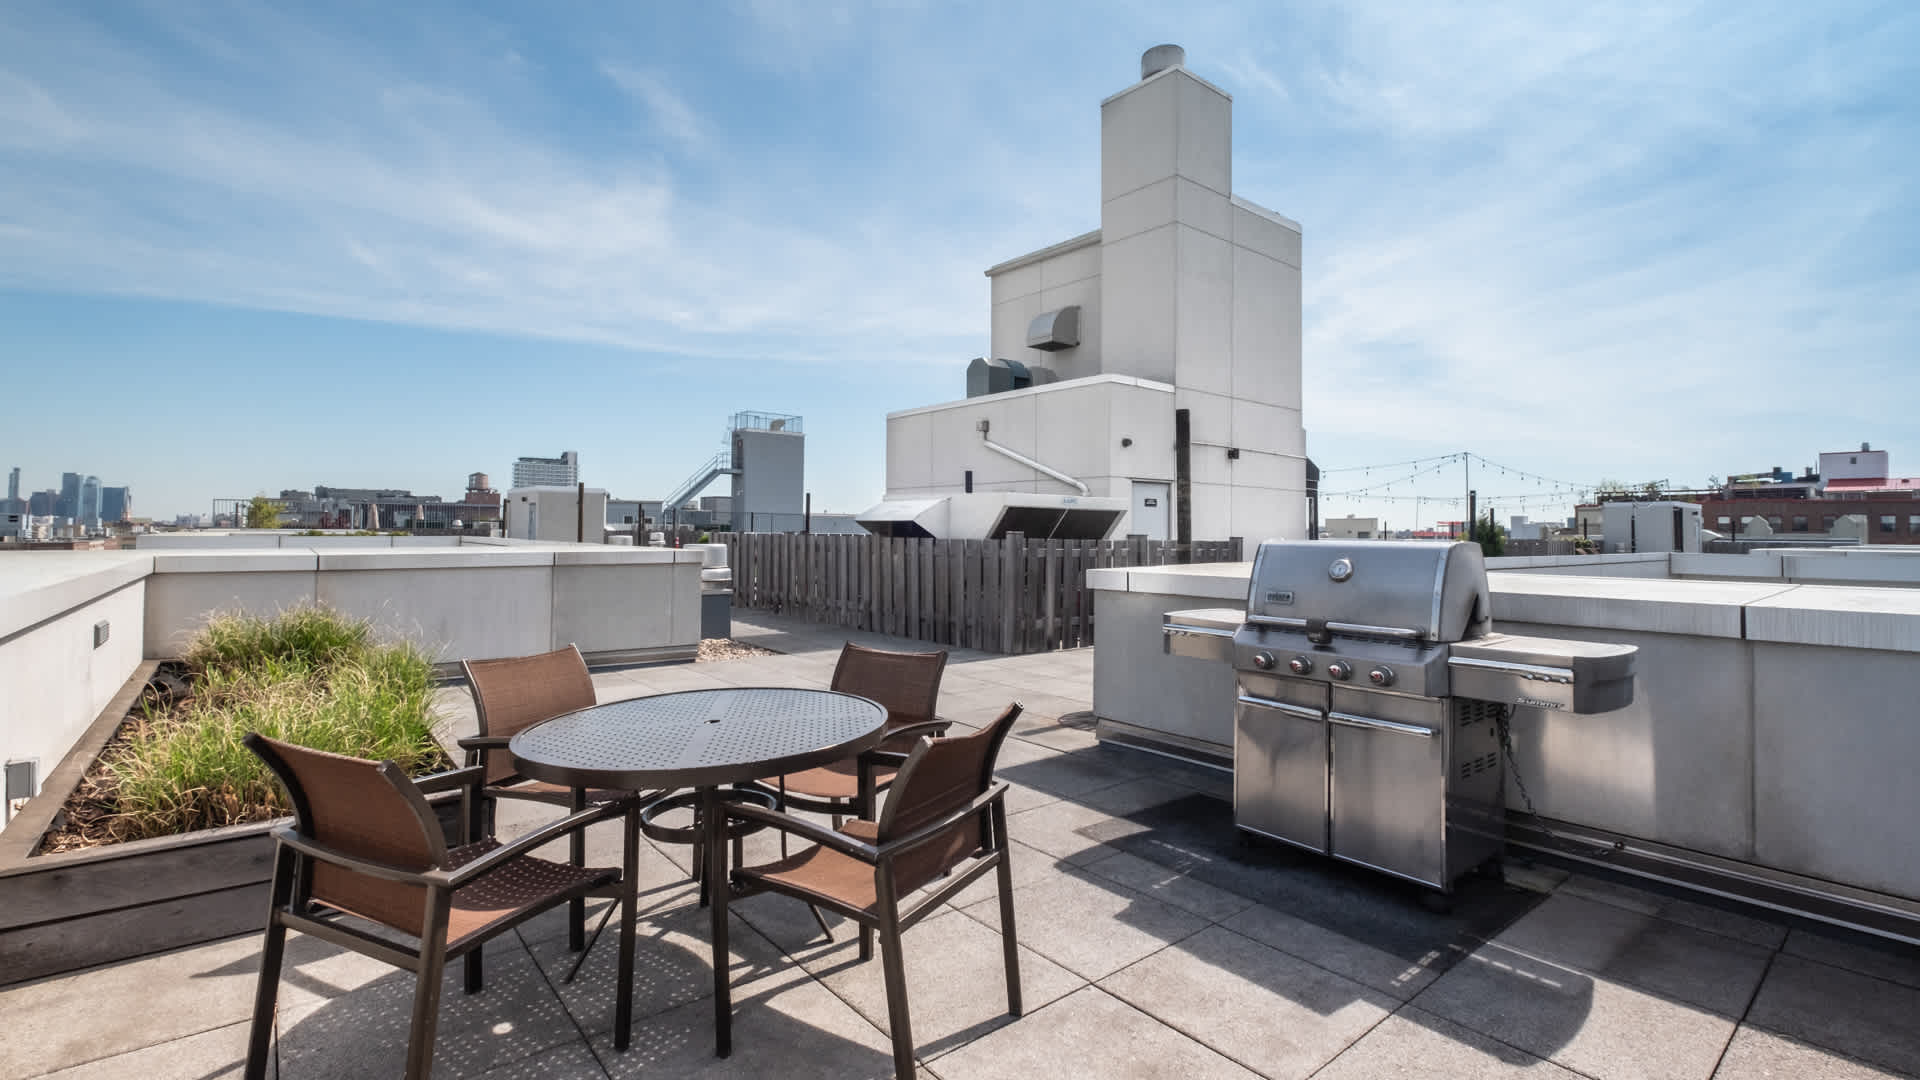 175 kent apartments roof deck